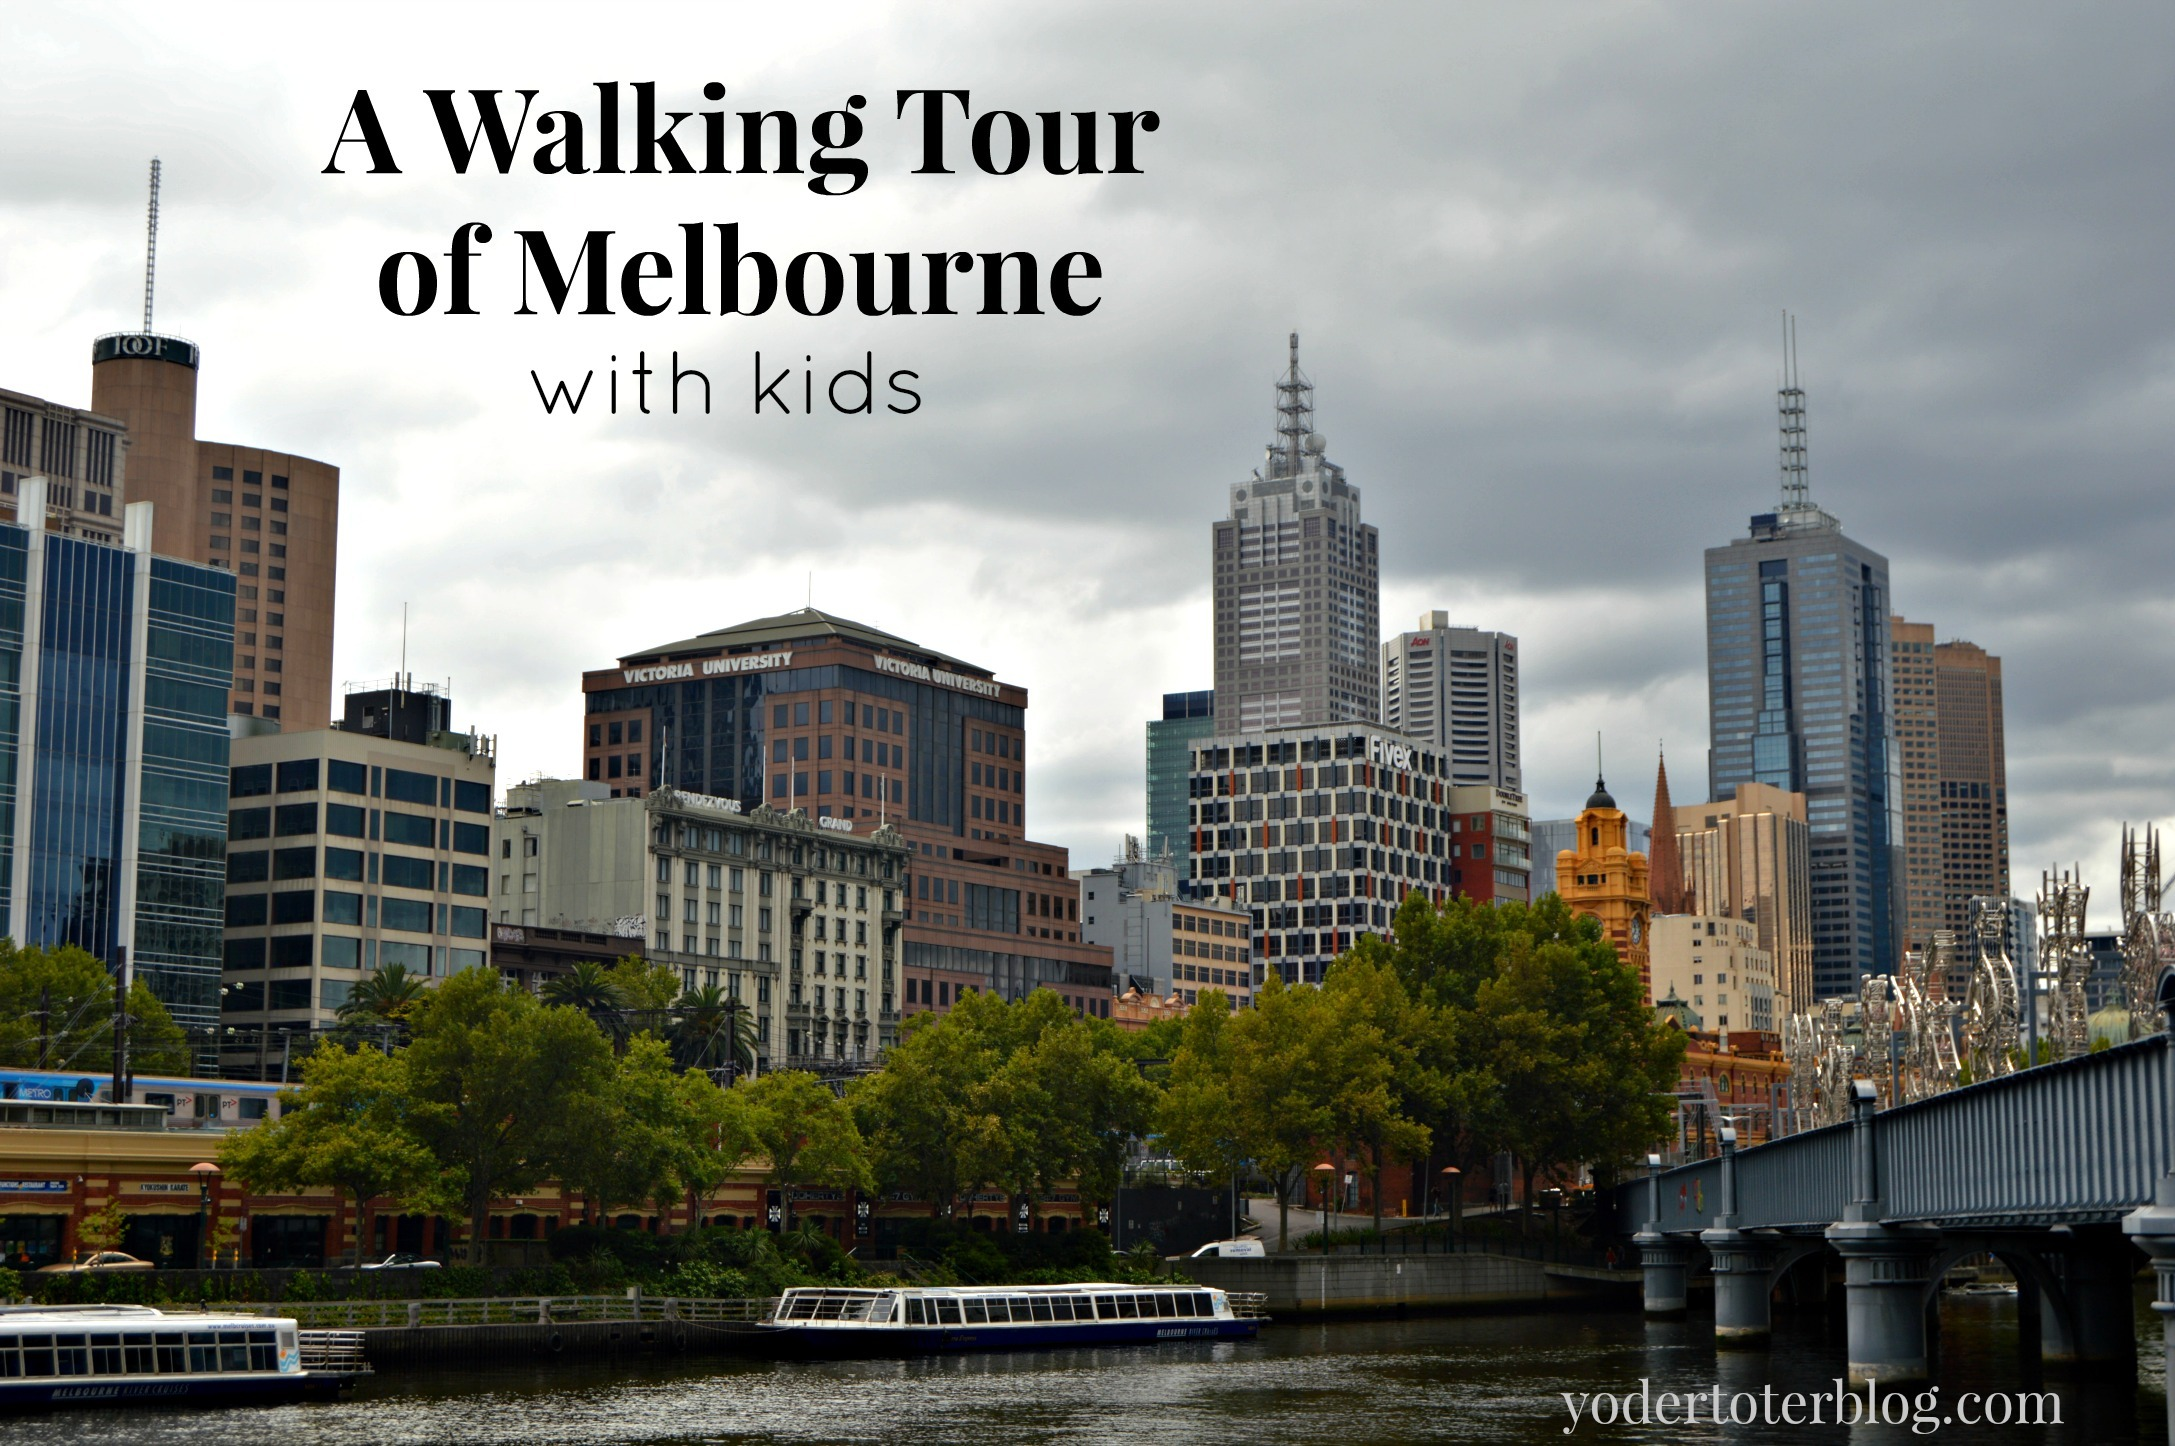 A walking tour of Melbourne with kids